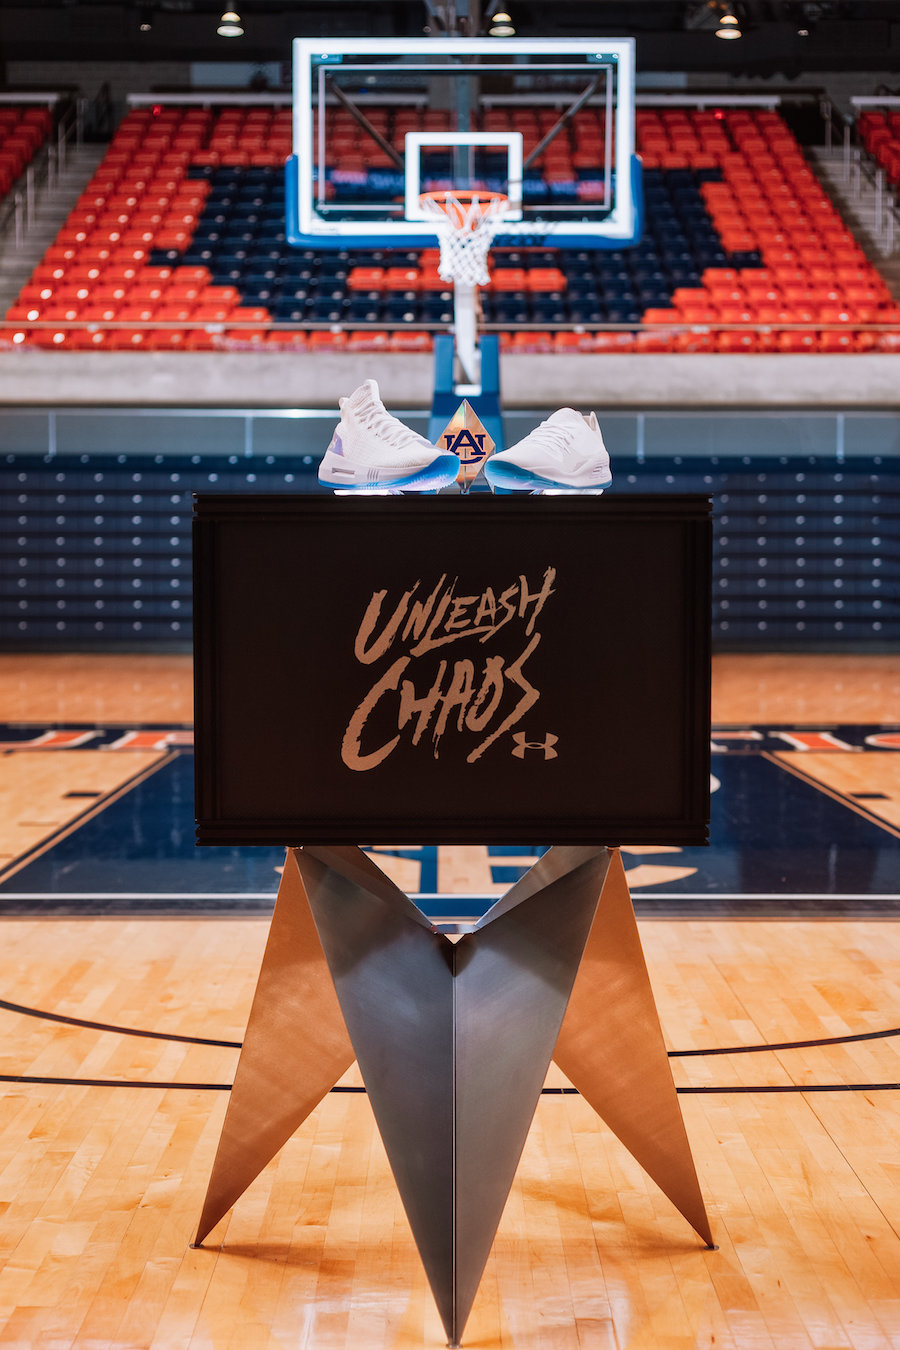 Under Armour Unleash Chaos Curry 4 Low Heat Seeker